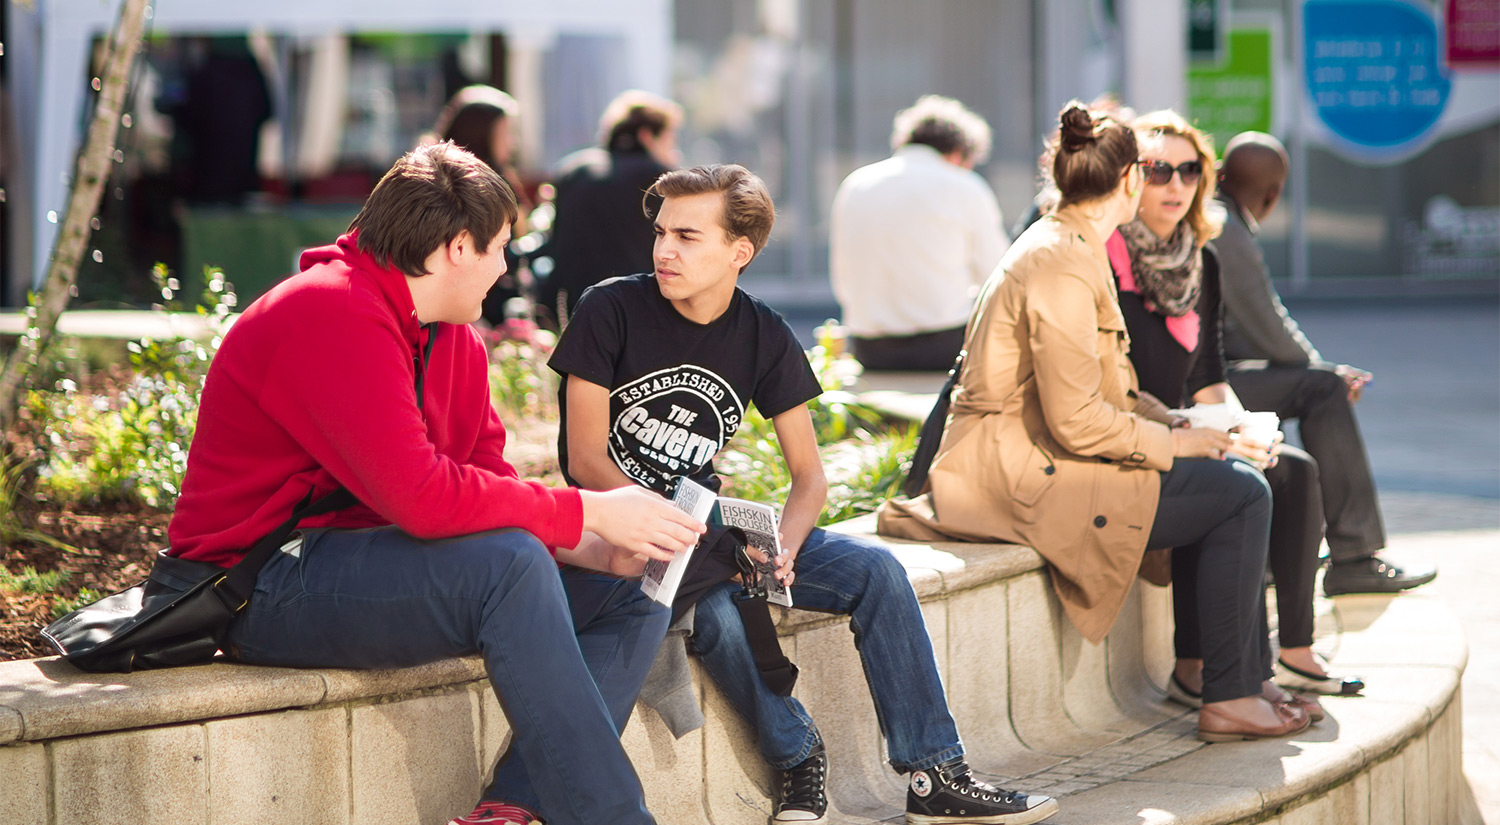 Our campus squares are a great place to meet up with friends.